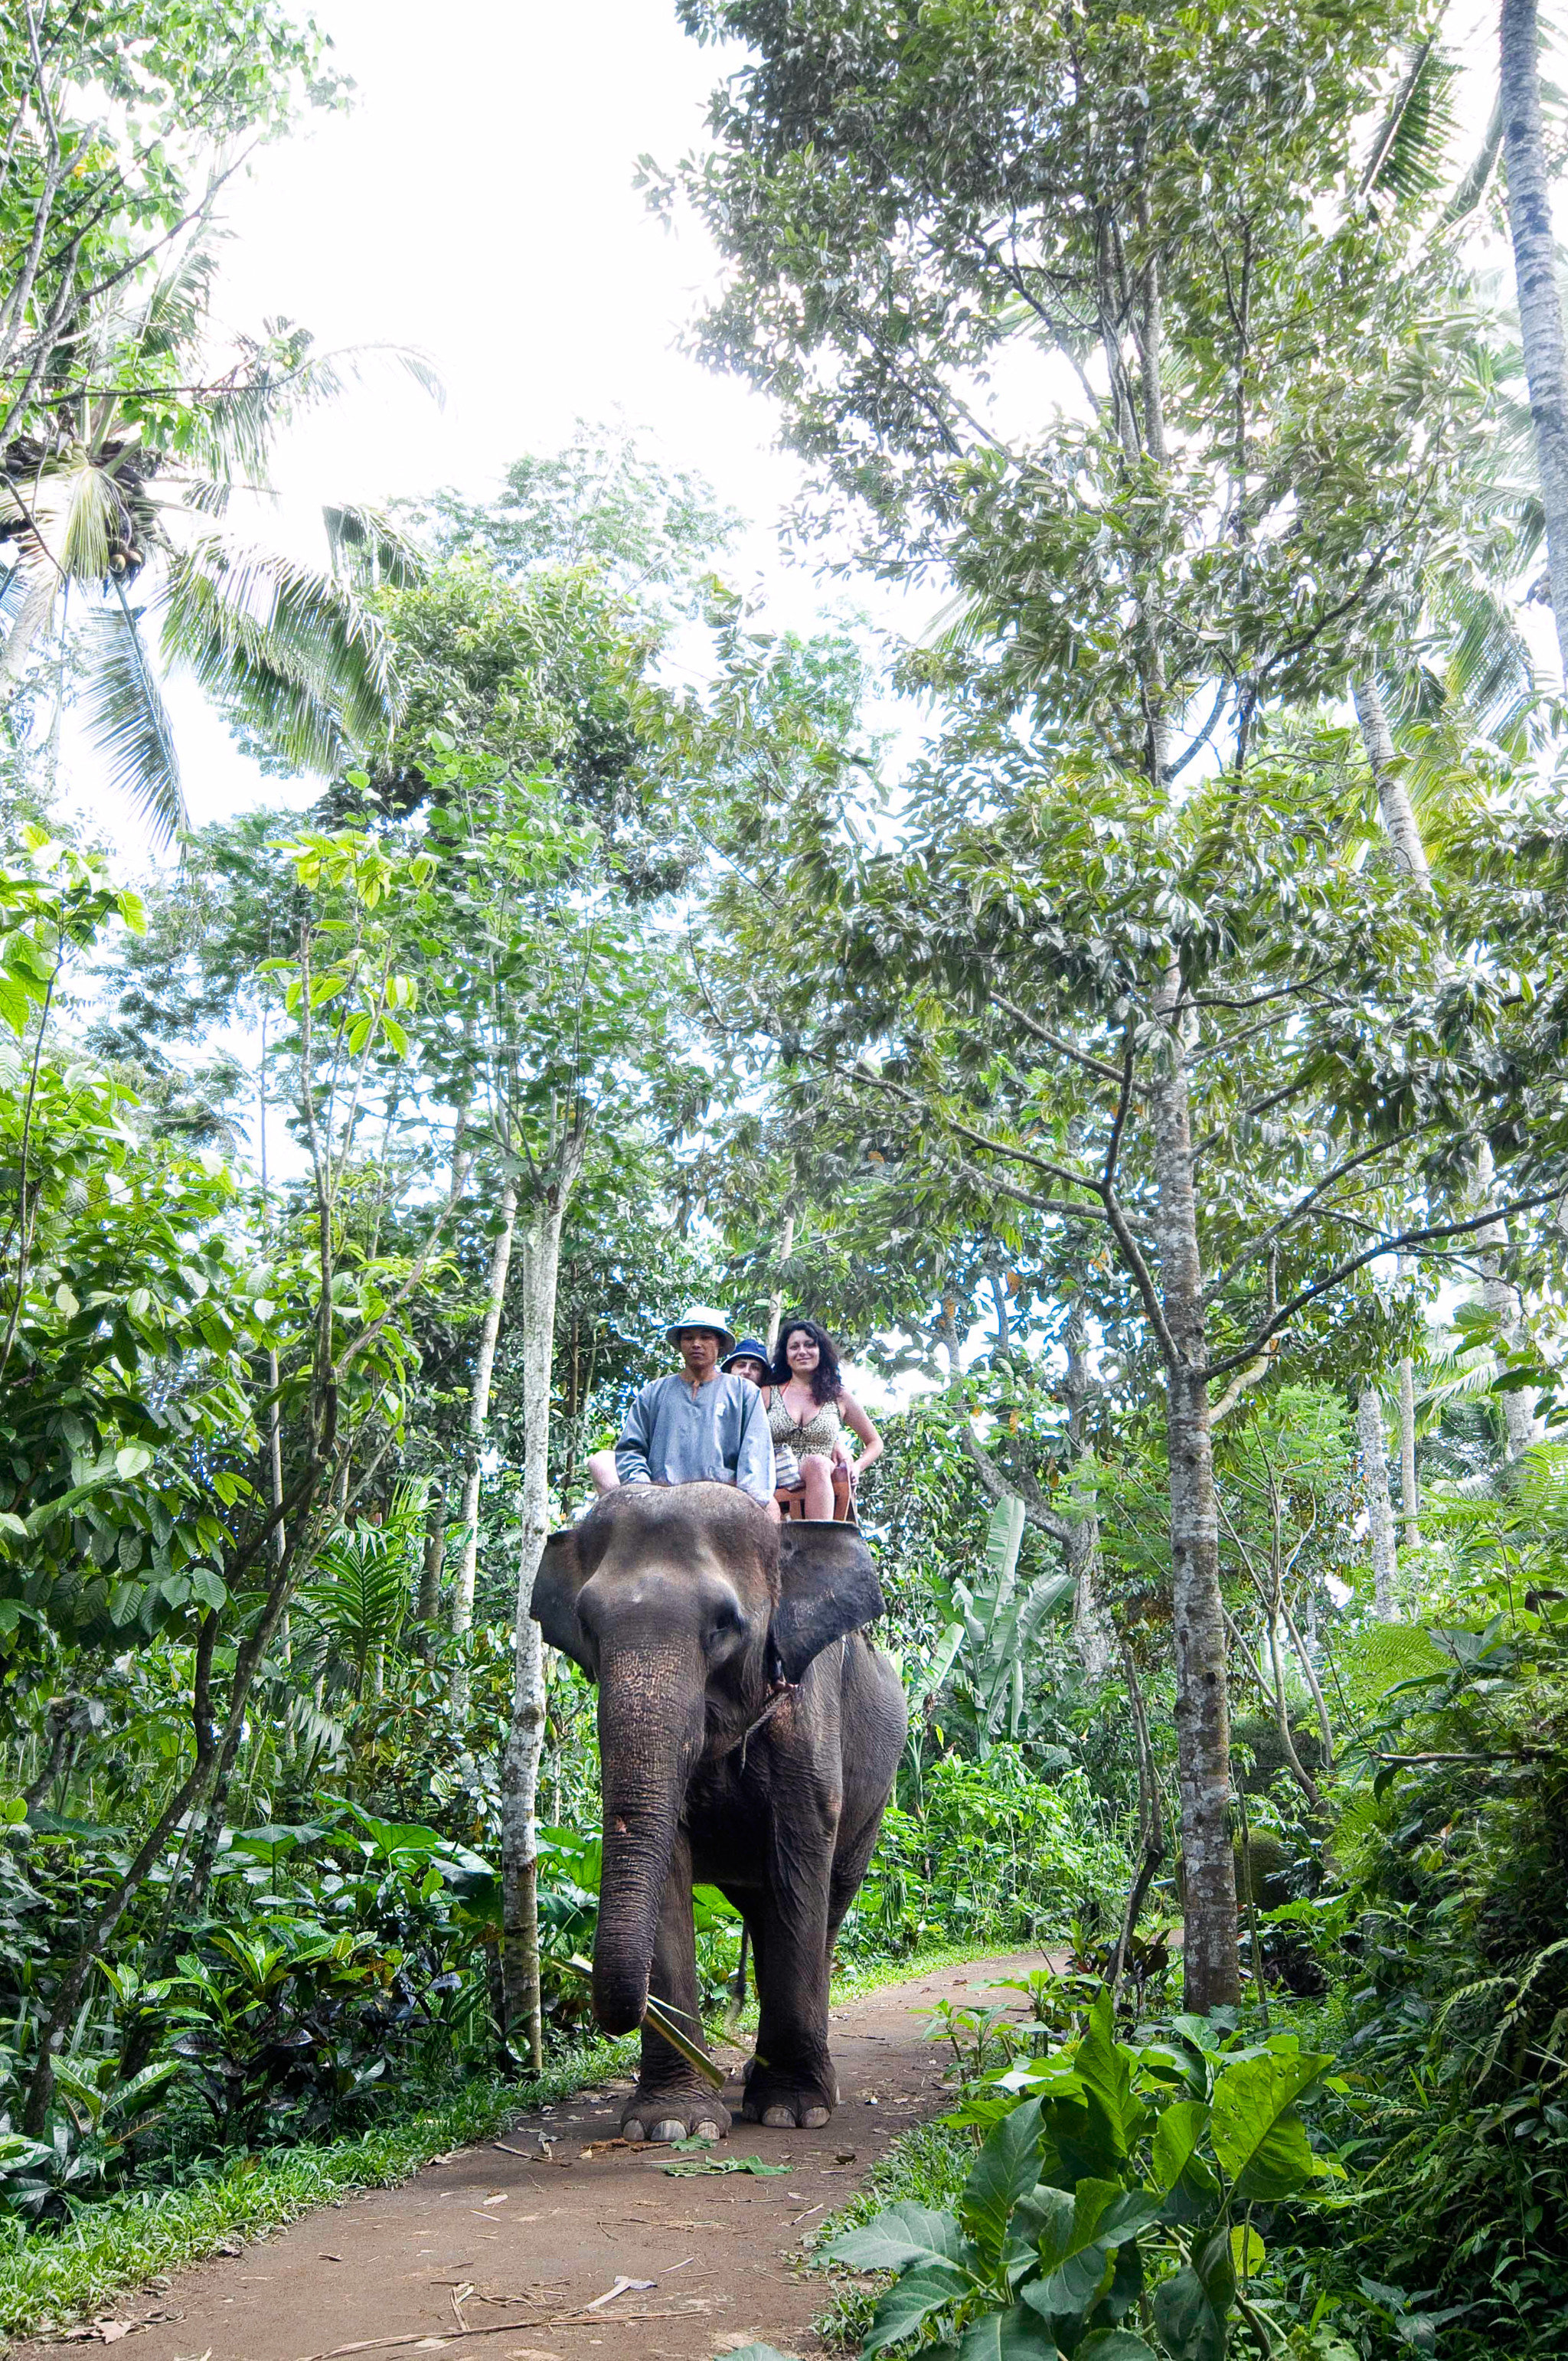 Adventure Parks Play Safari tree elephant habitat animal Forest walking natural environment ecosystem trail path rainforest elephants and mammoths Jungle Wildlife mammal dirt zoo wooded woodland plant